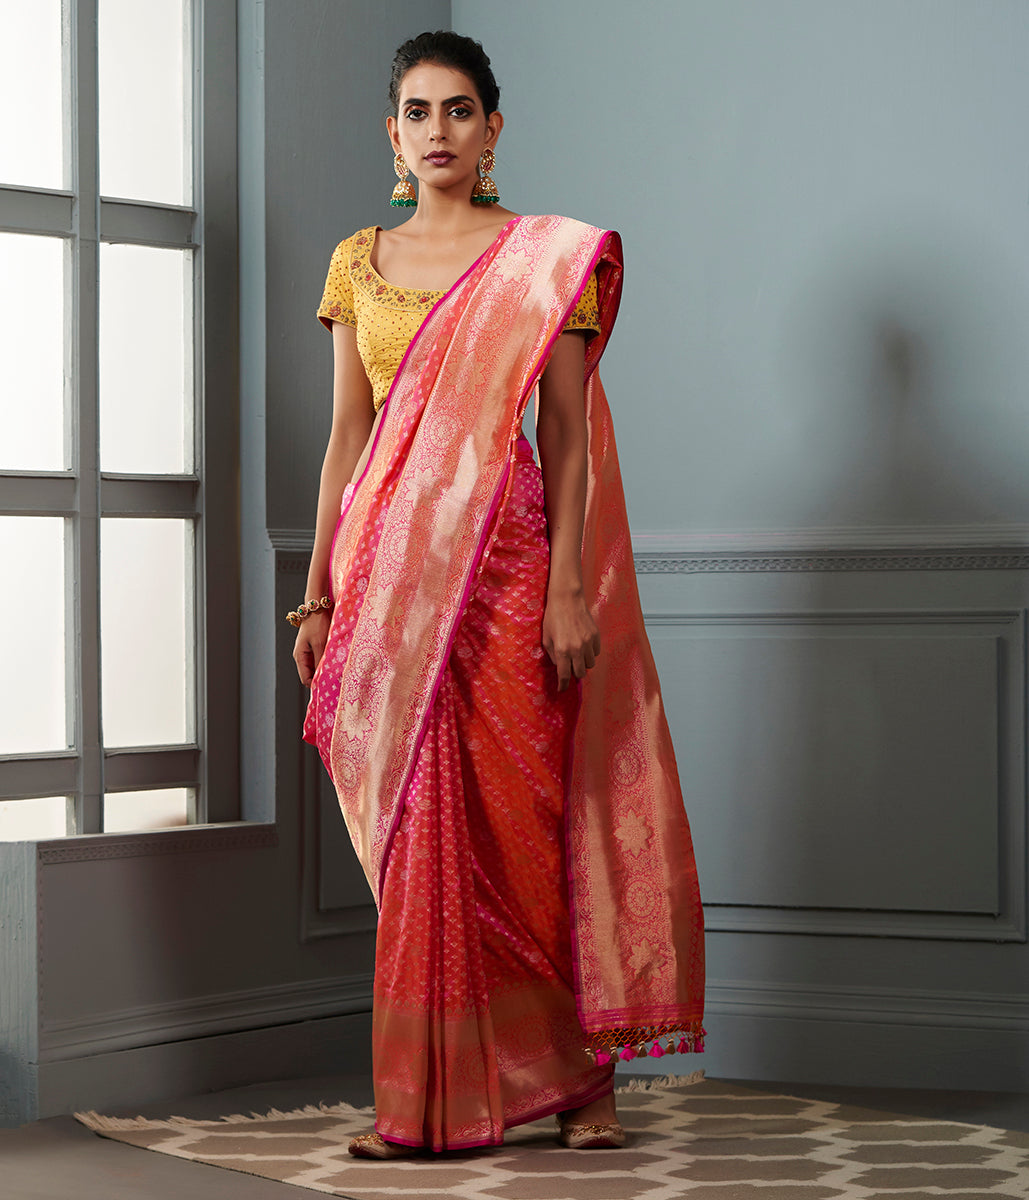 Handwoven Banarasi saree in Pink and peach dual tone with broad floral border